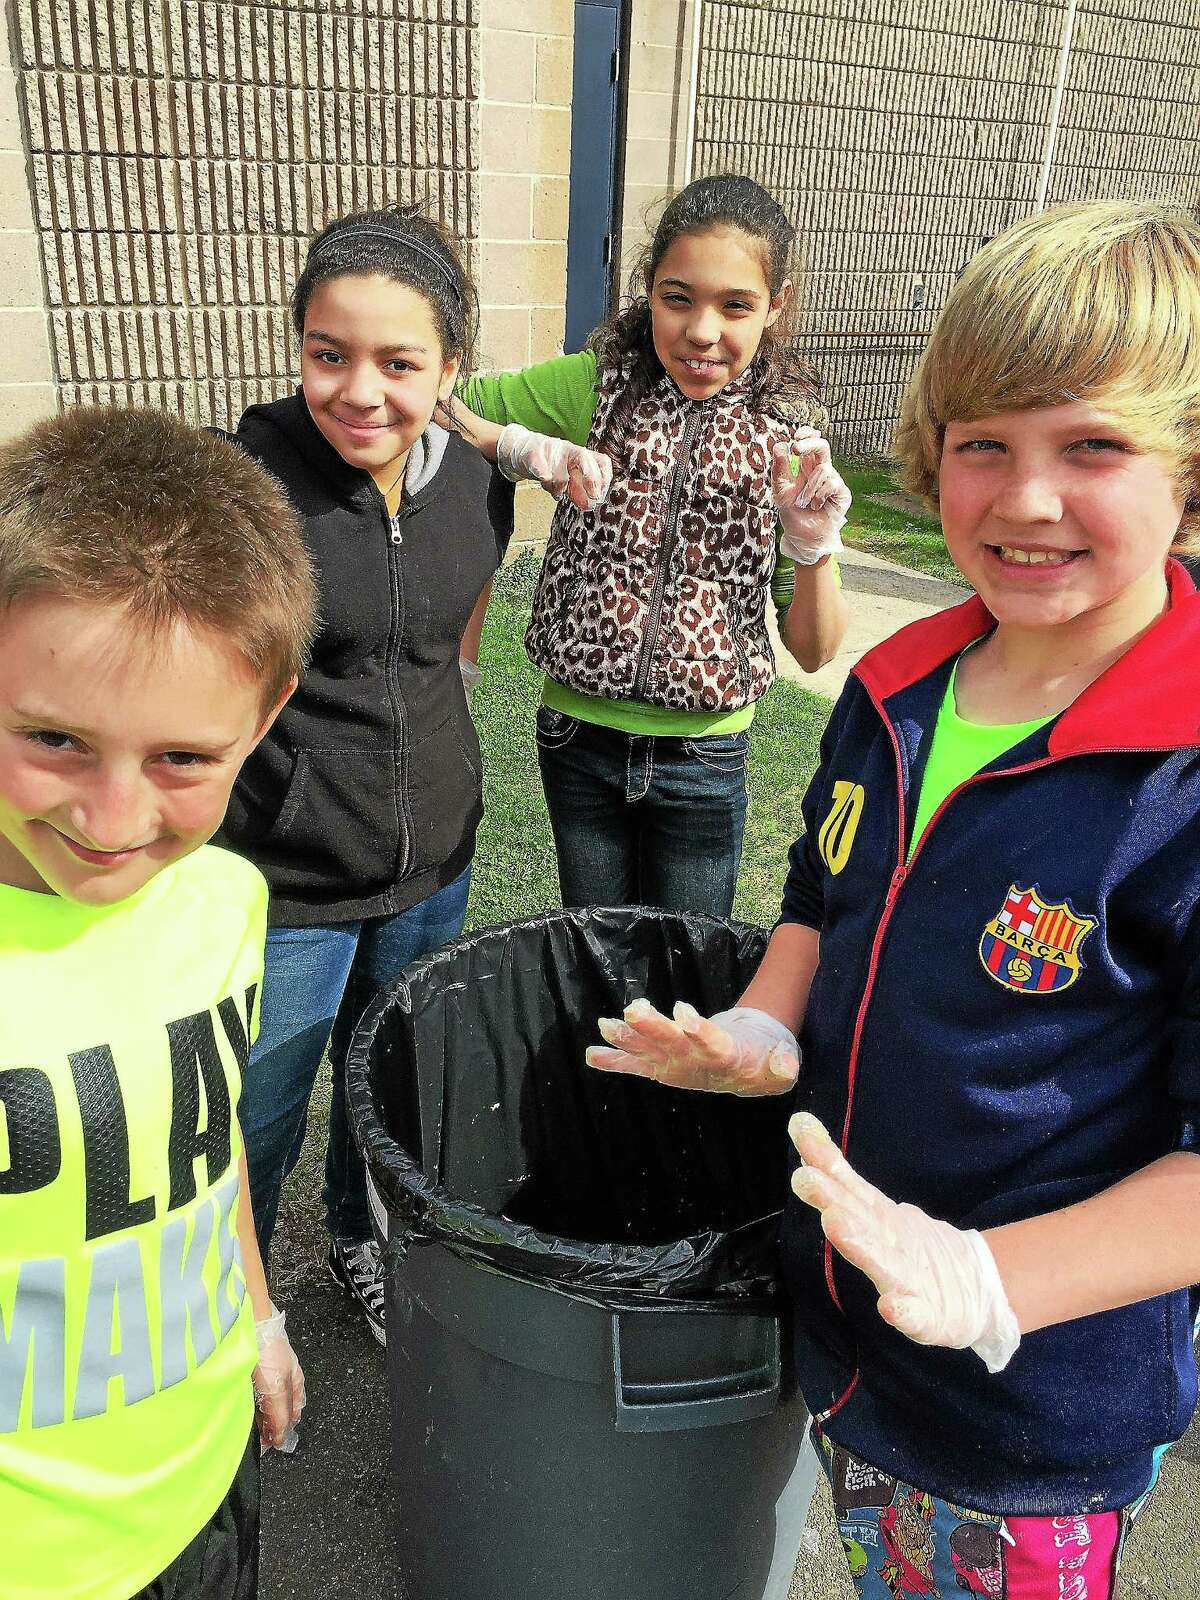 Other hands-on scientific activities for the Middletown fifth-graders will offer insight into renewable resources and what sustainable management means.